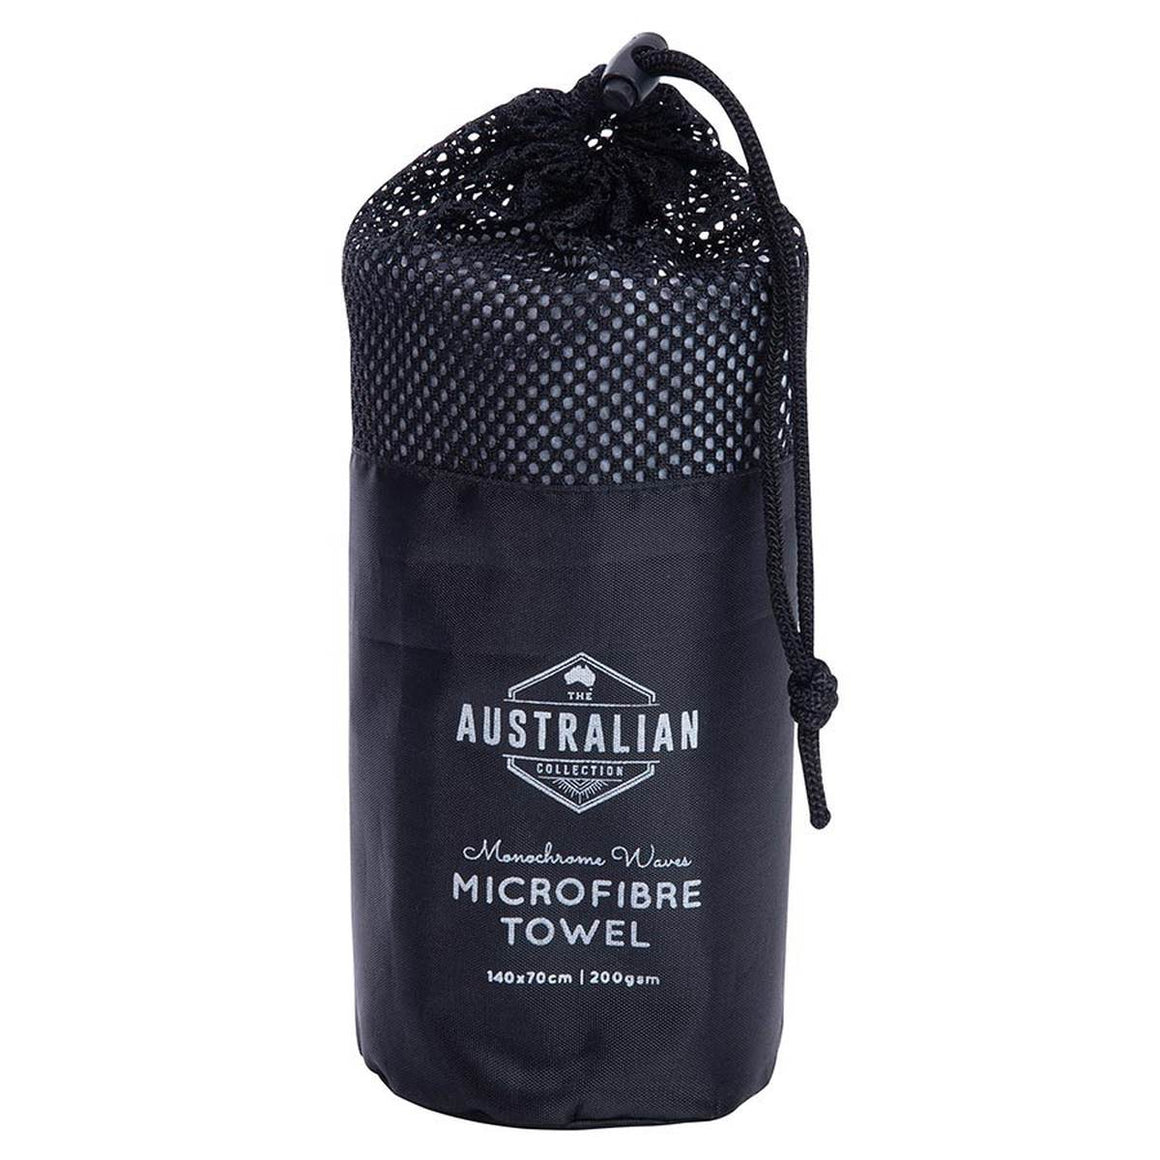 Black Bag Packaging featuring the text The Australian Collection Microfibre Towel